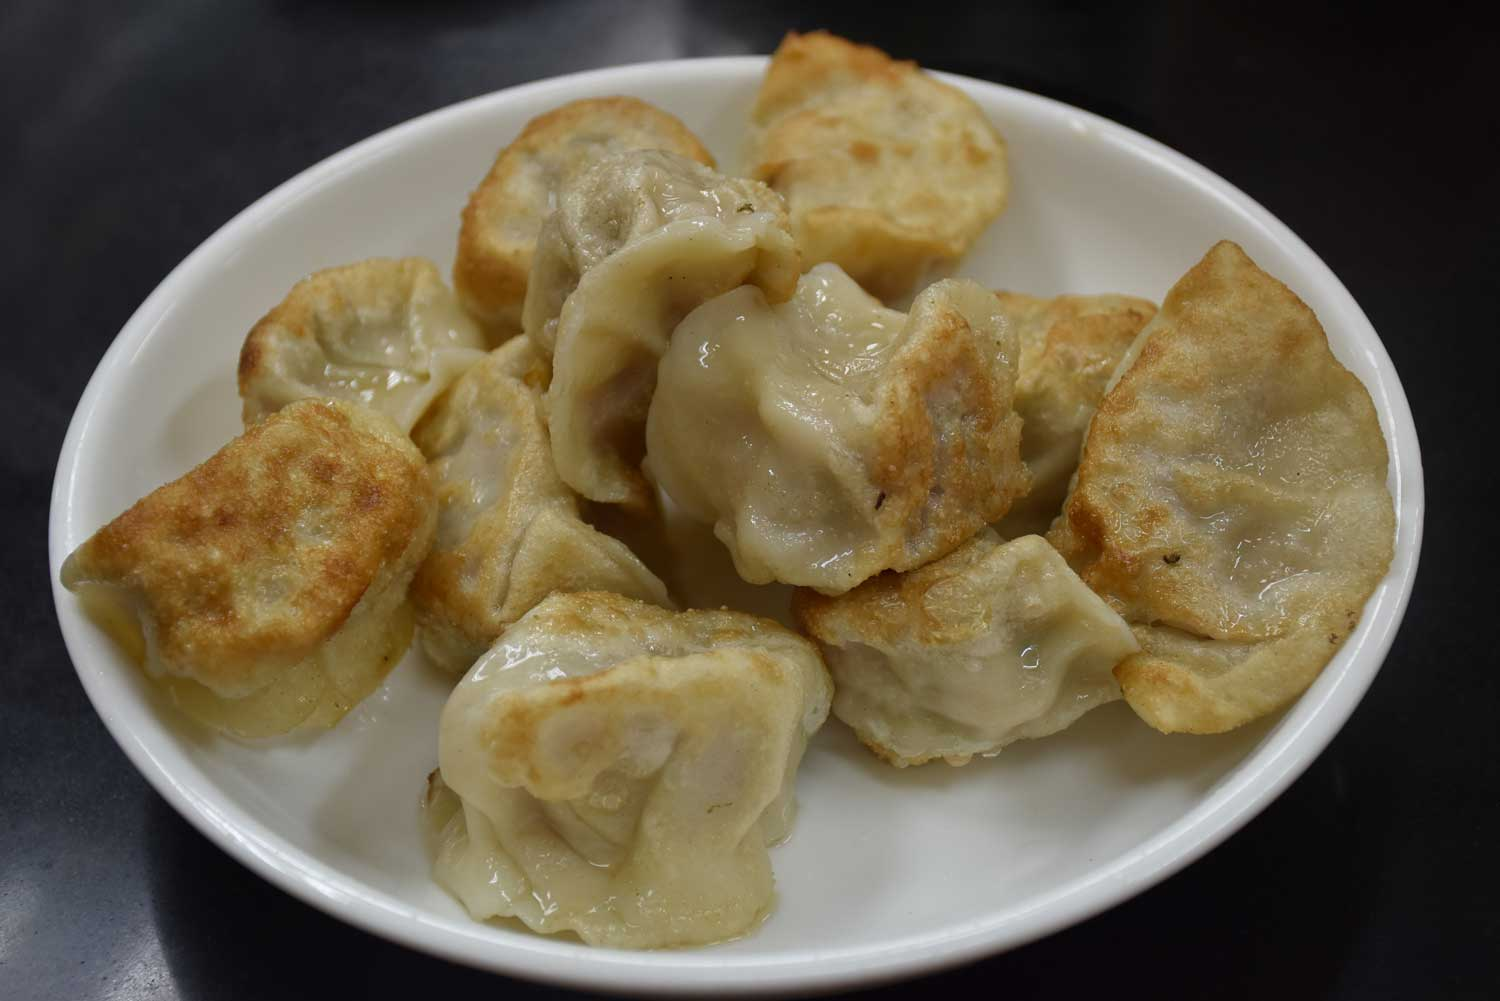 Peking Dumplings Fried Dumplings